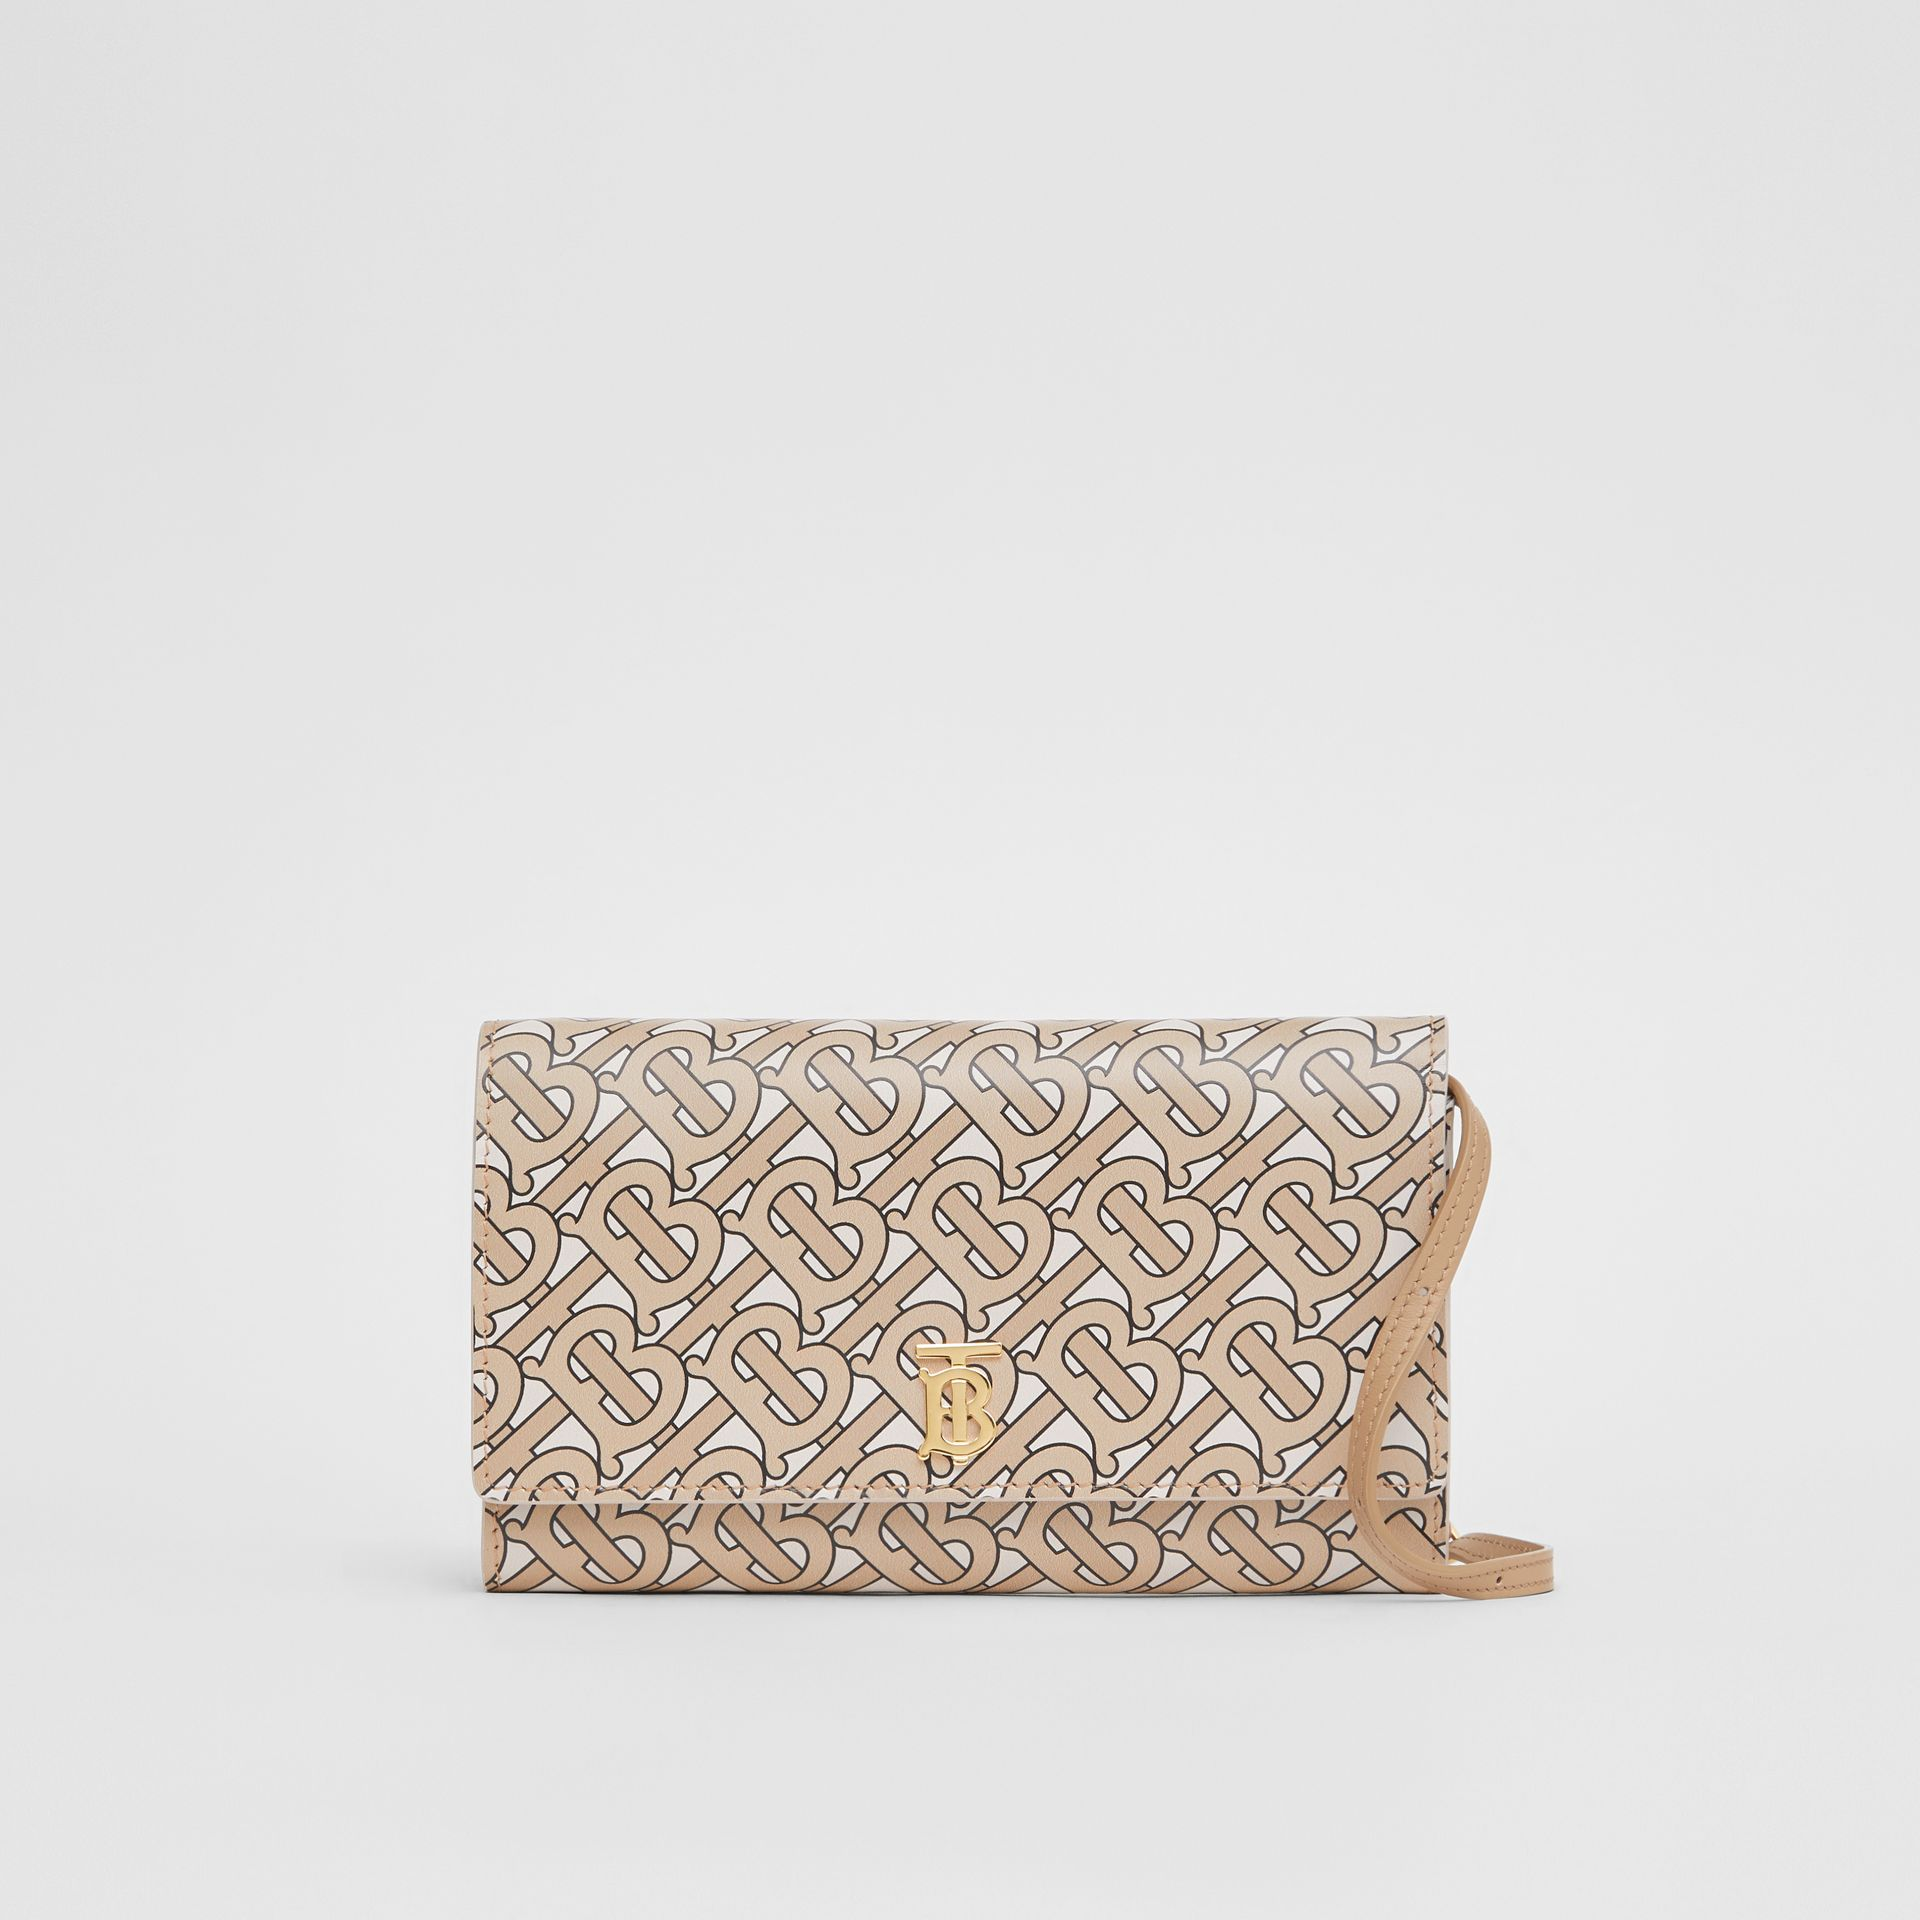 Monogram Print Leather Wallet with Detachable Strap in Beige - Women | Burberry United Kingdom - gallery image 0